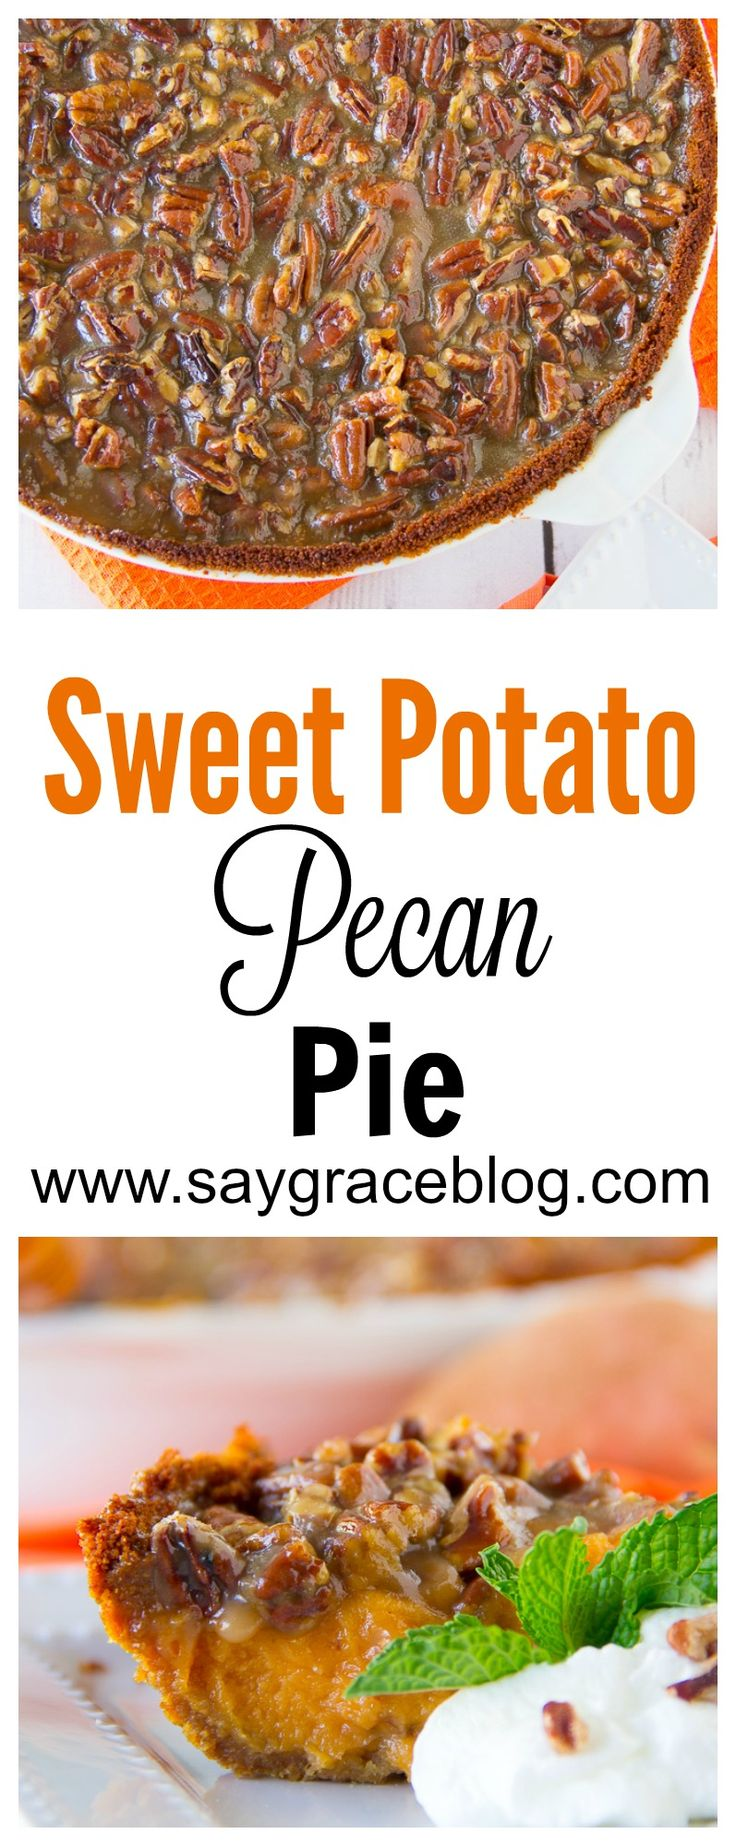 The traditional sweet potato pie goes up a notch when it's covered in a delicious, ooey-gooey pecan pie filling.